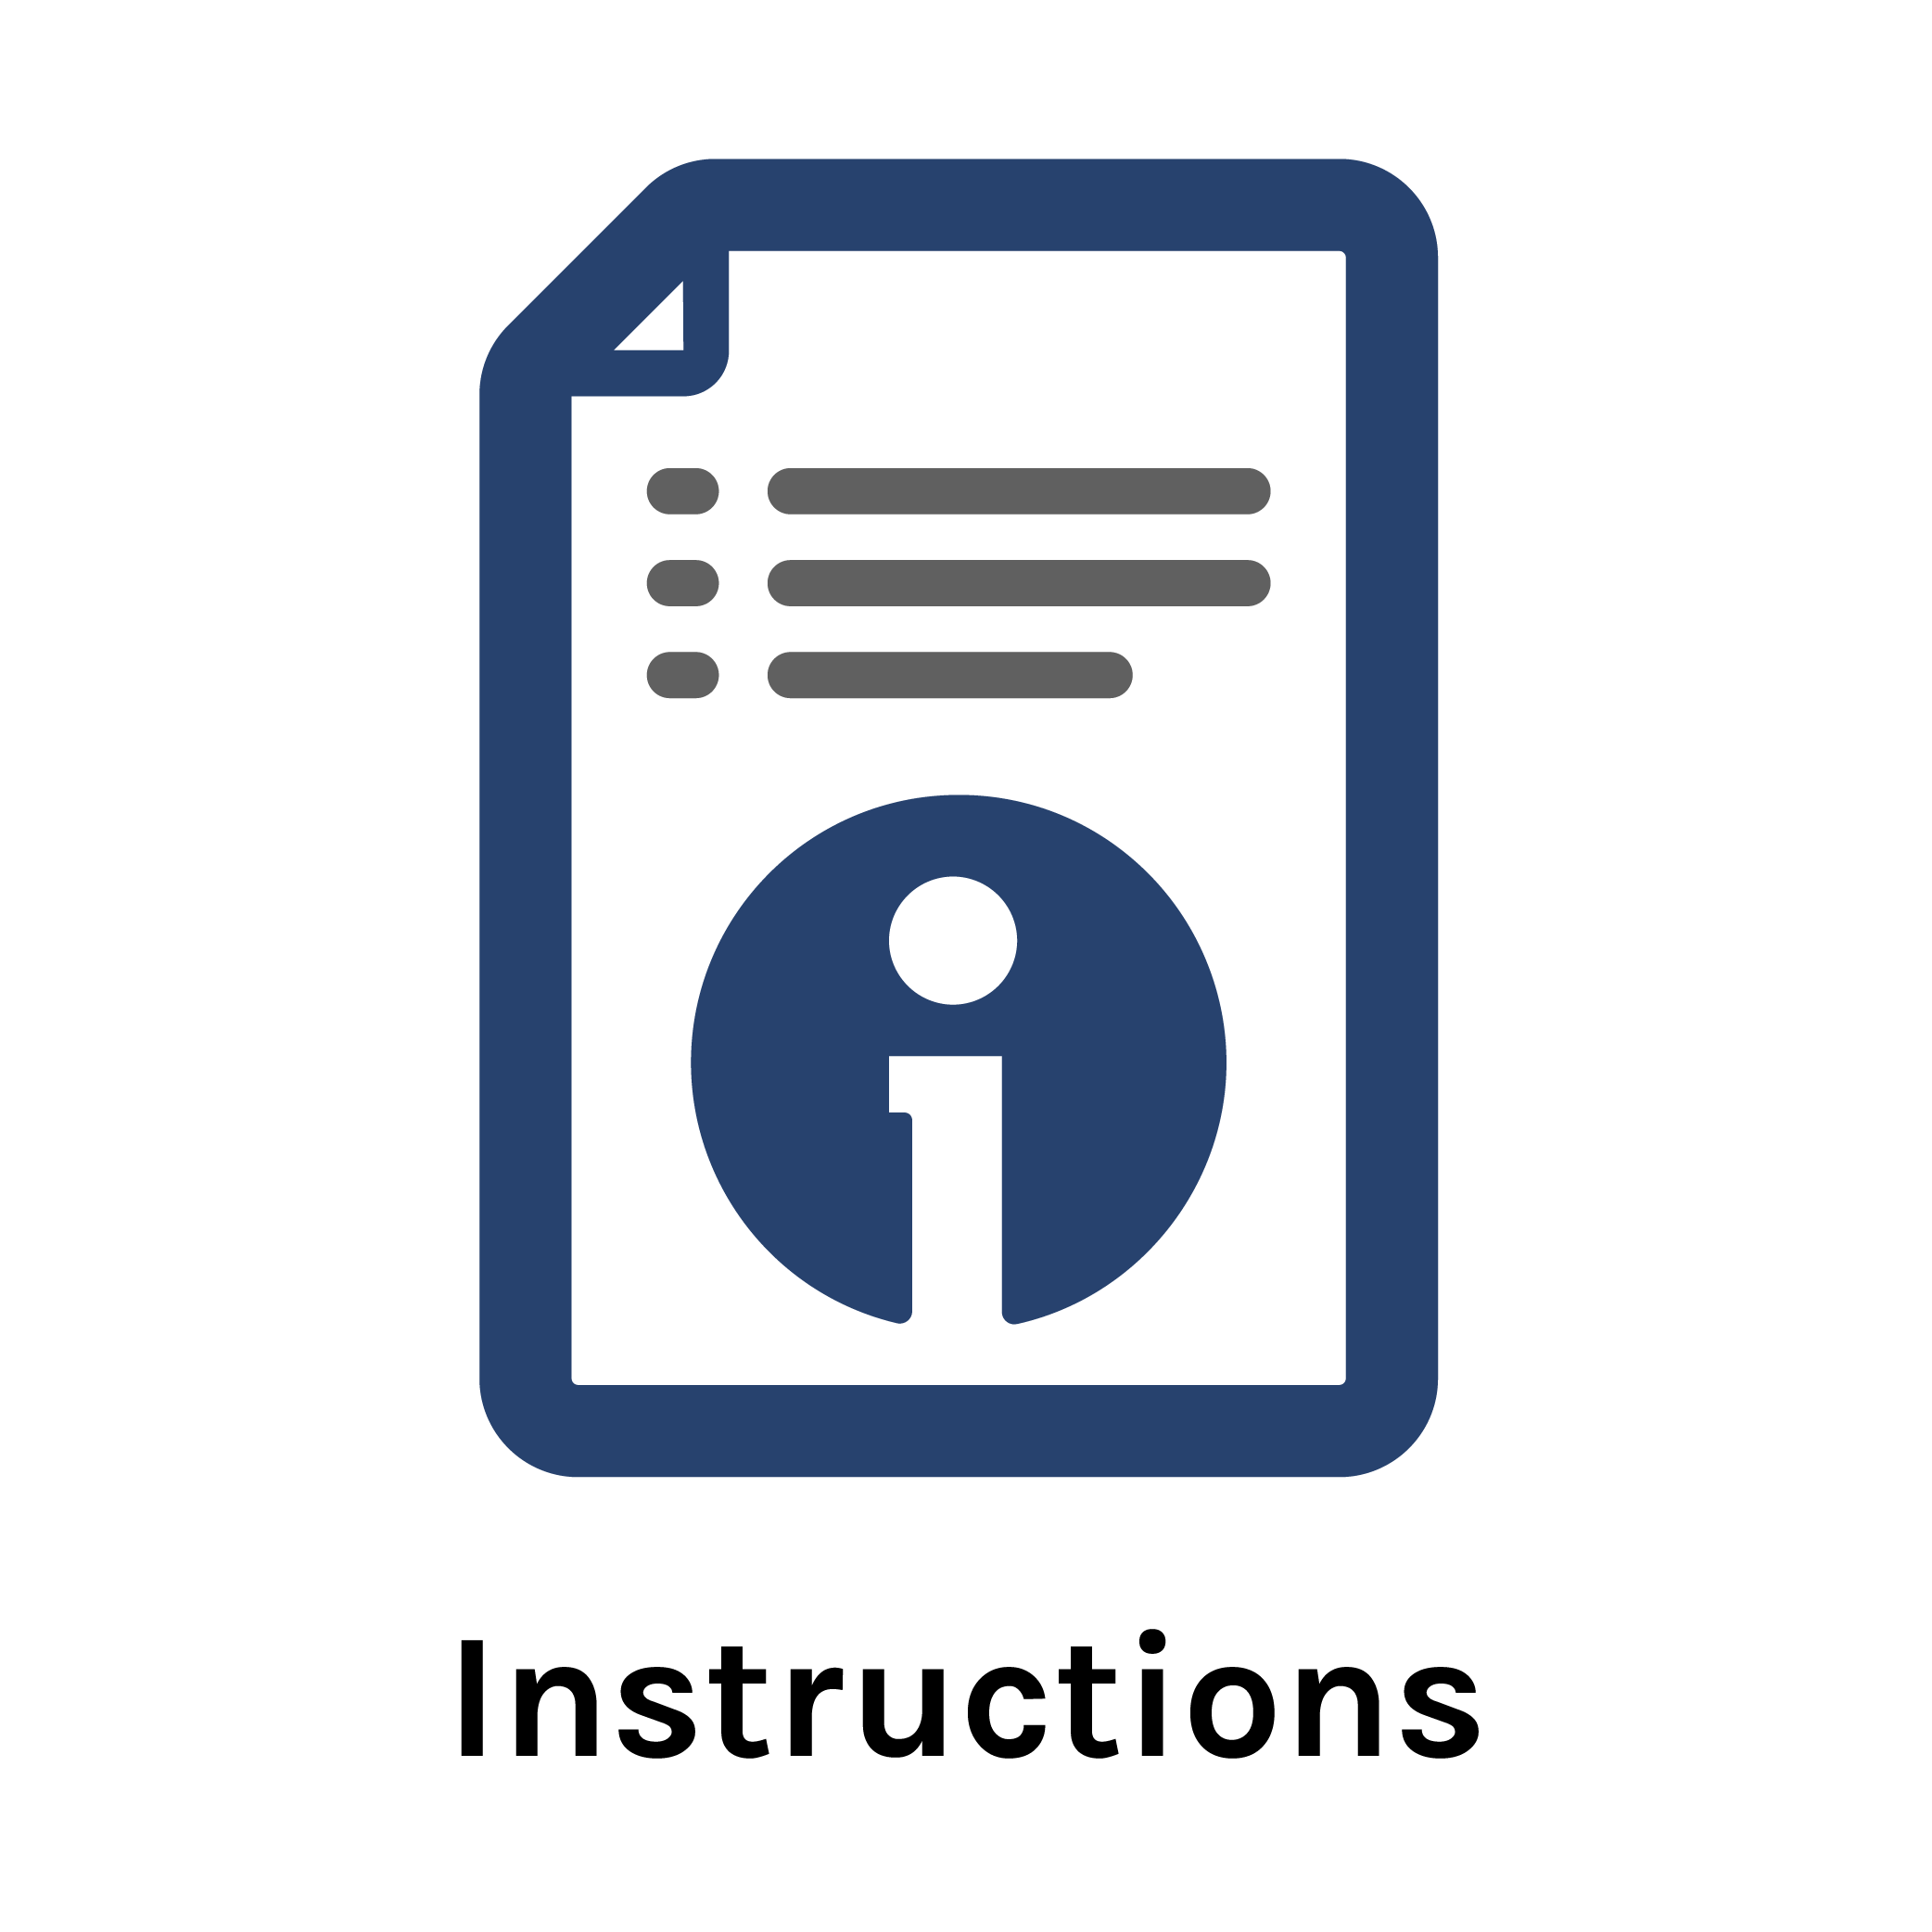 new-website-icons-2021-instructions.png